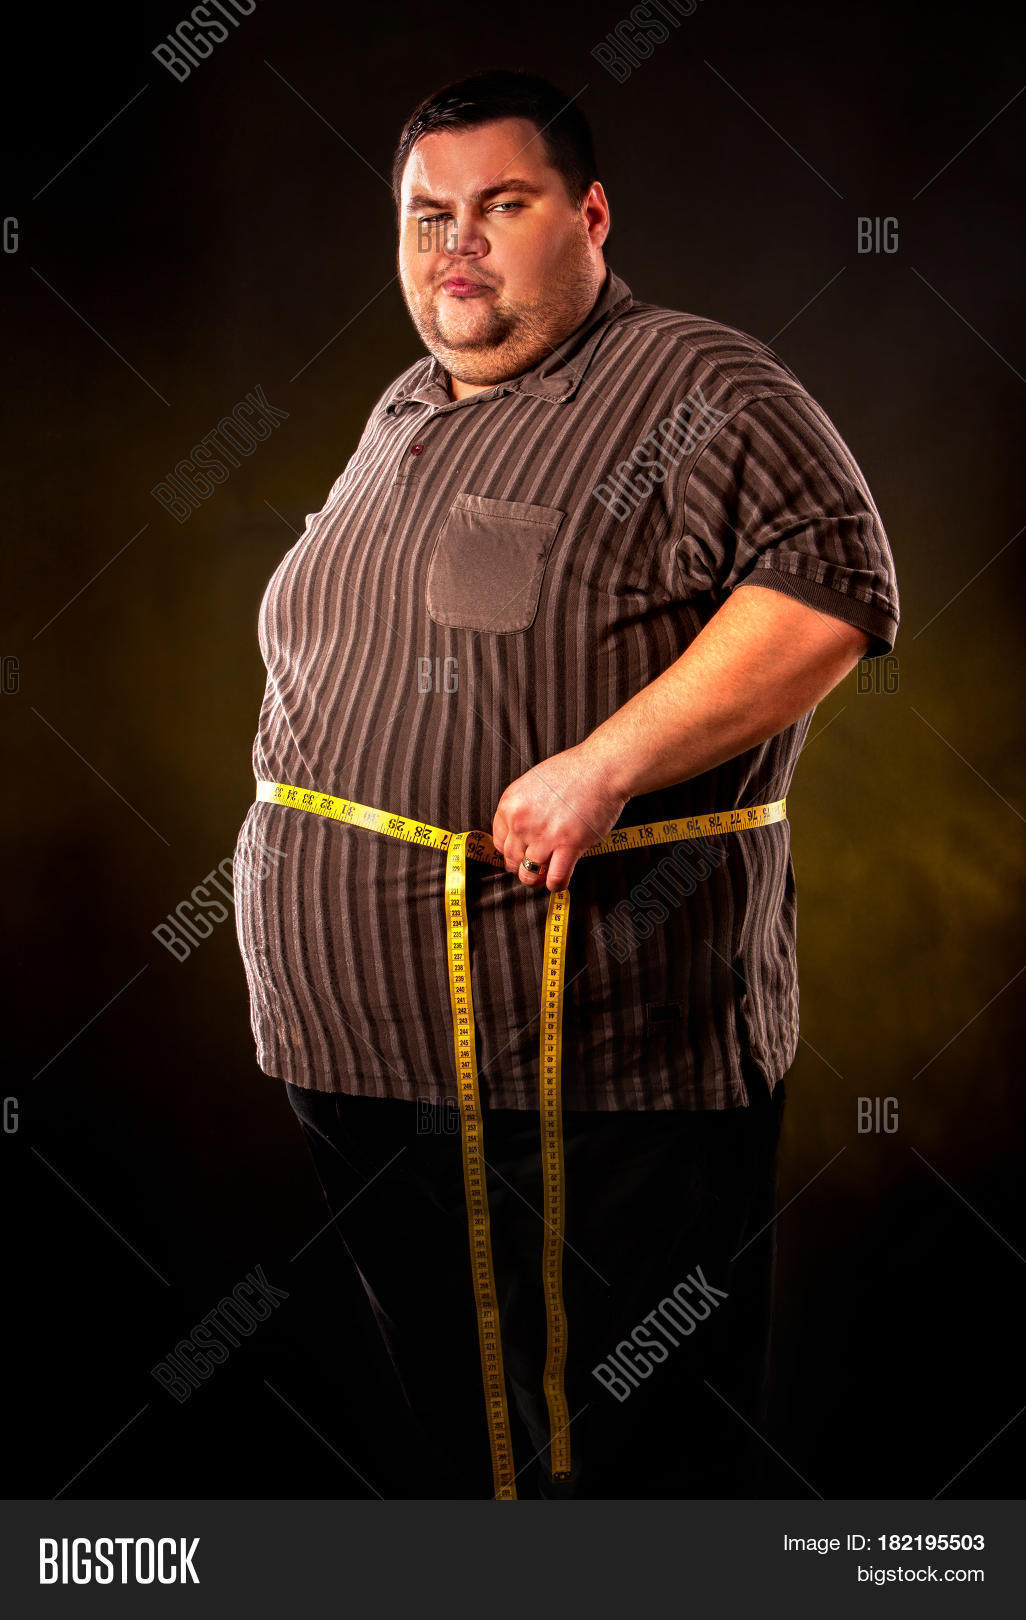 Man Belly Fat Tape Image Photo Free Trial Bigstock